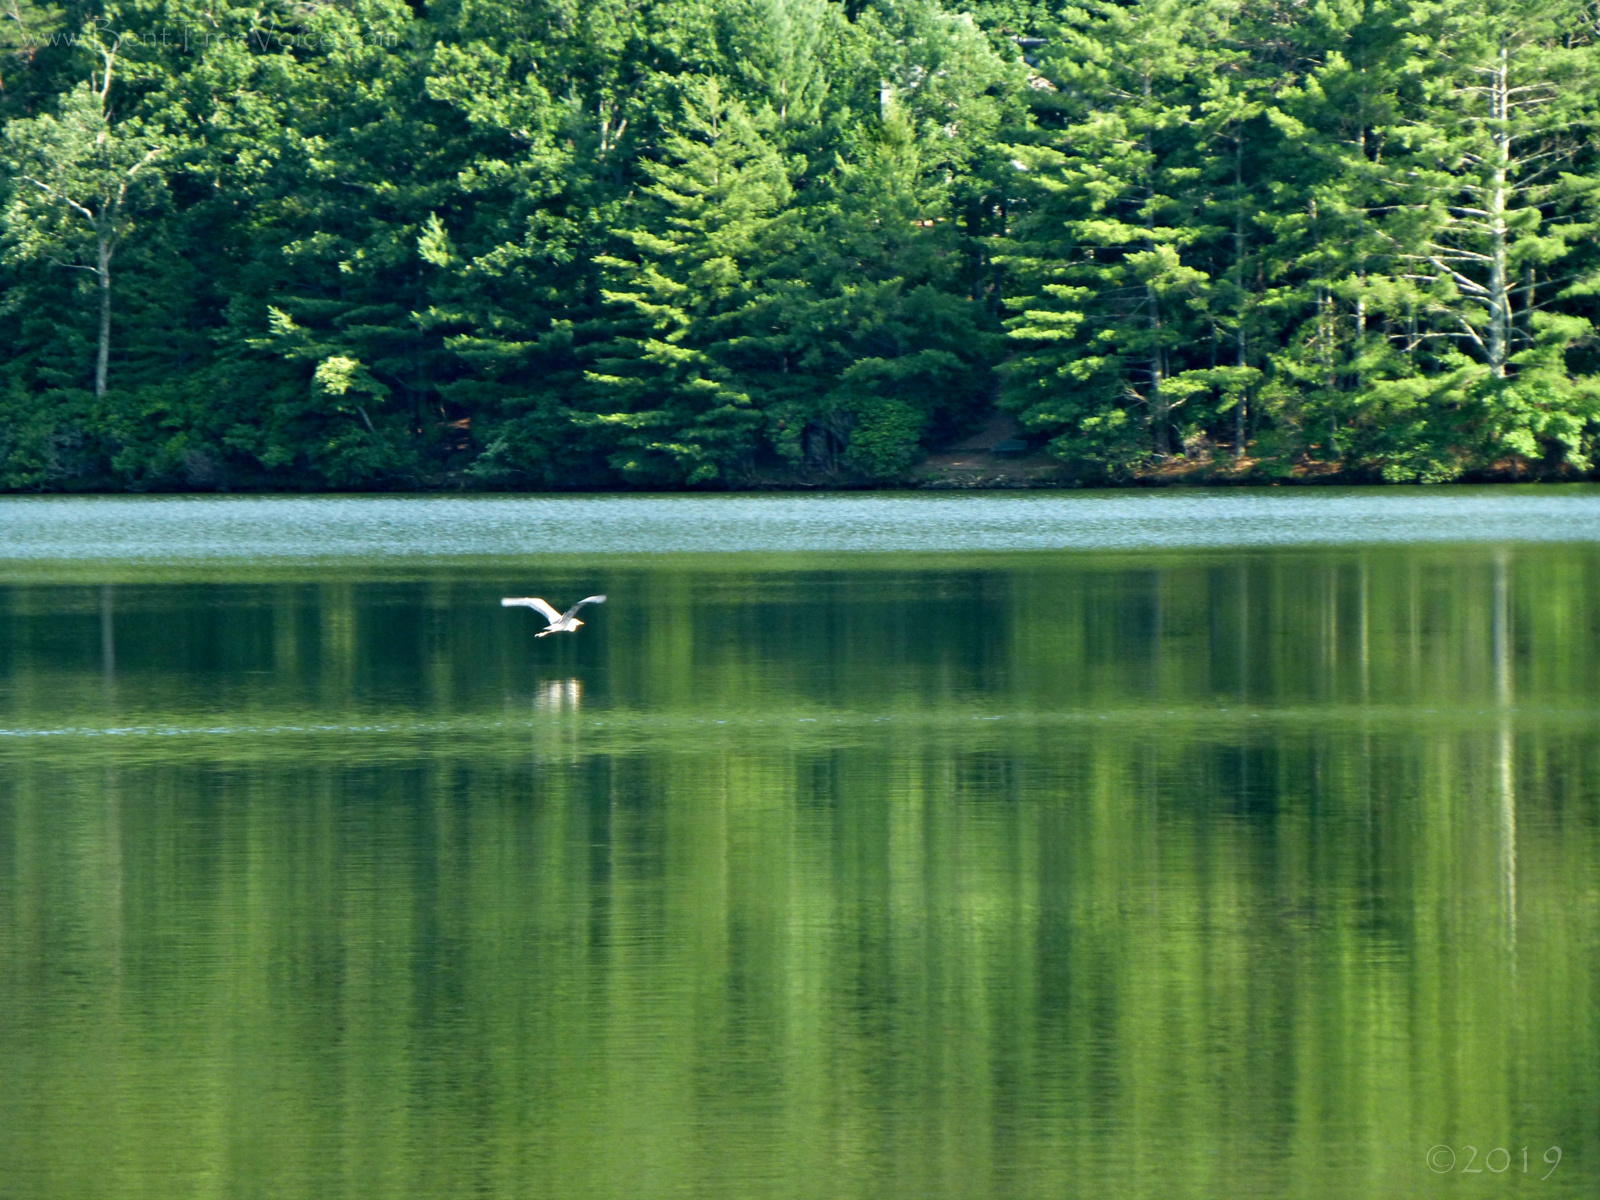 June 21, 2019 - Blue Heron flying over Lake Tamarack